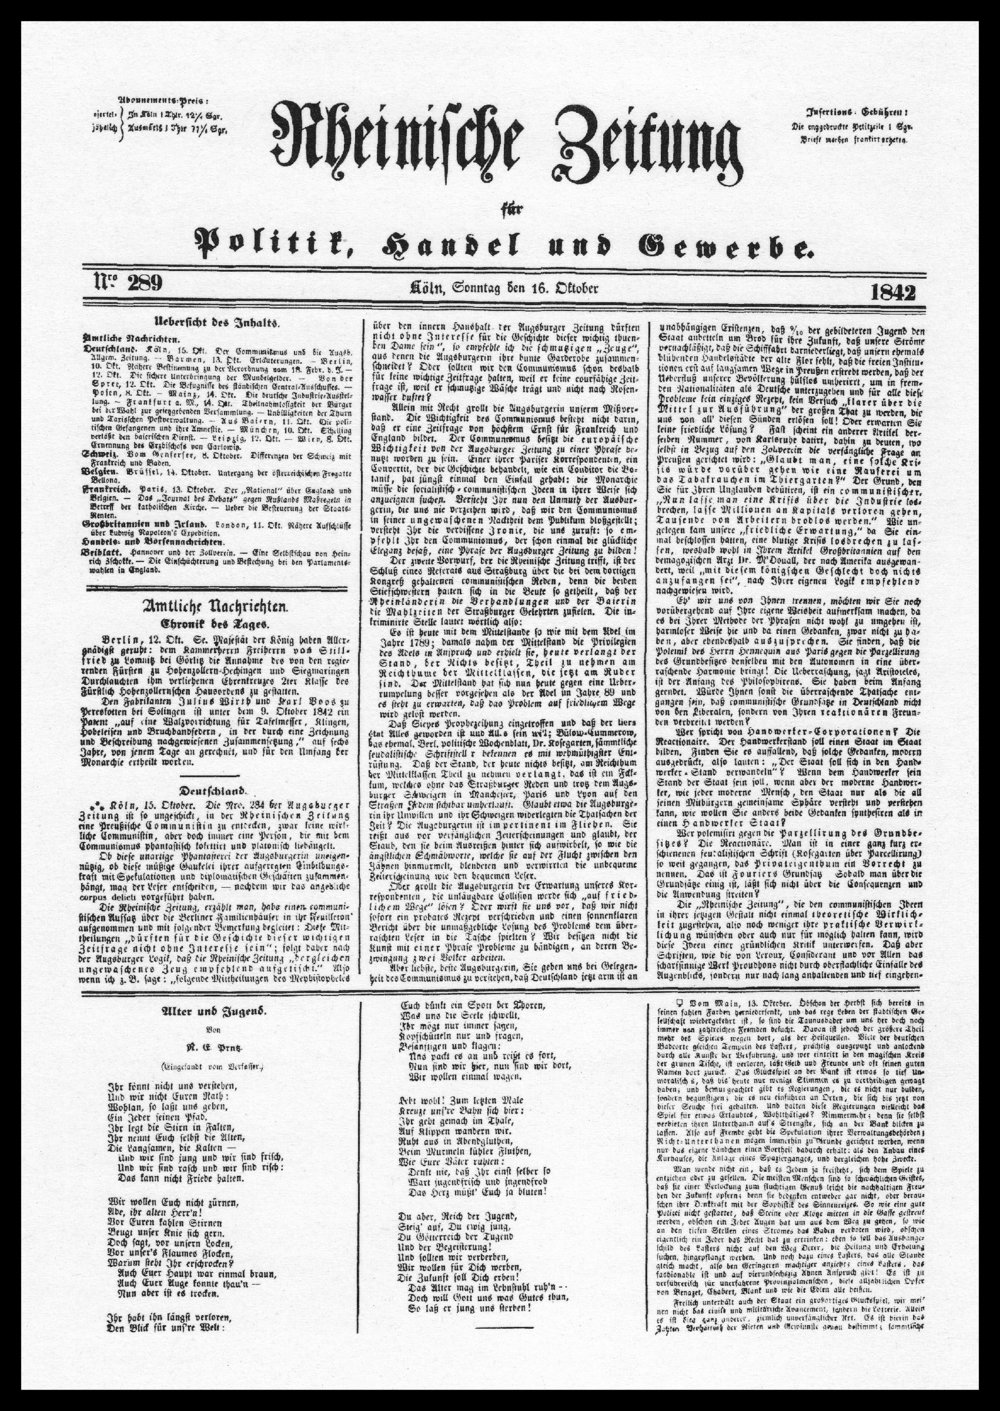 The front page of Rhineland News (Rheinische Zeitung) on the 16th October 1842. Karl Marx wrote and edited for the newspaper.